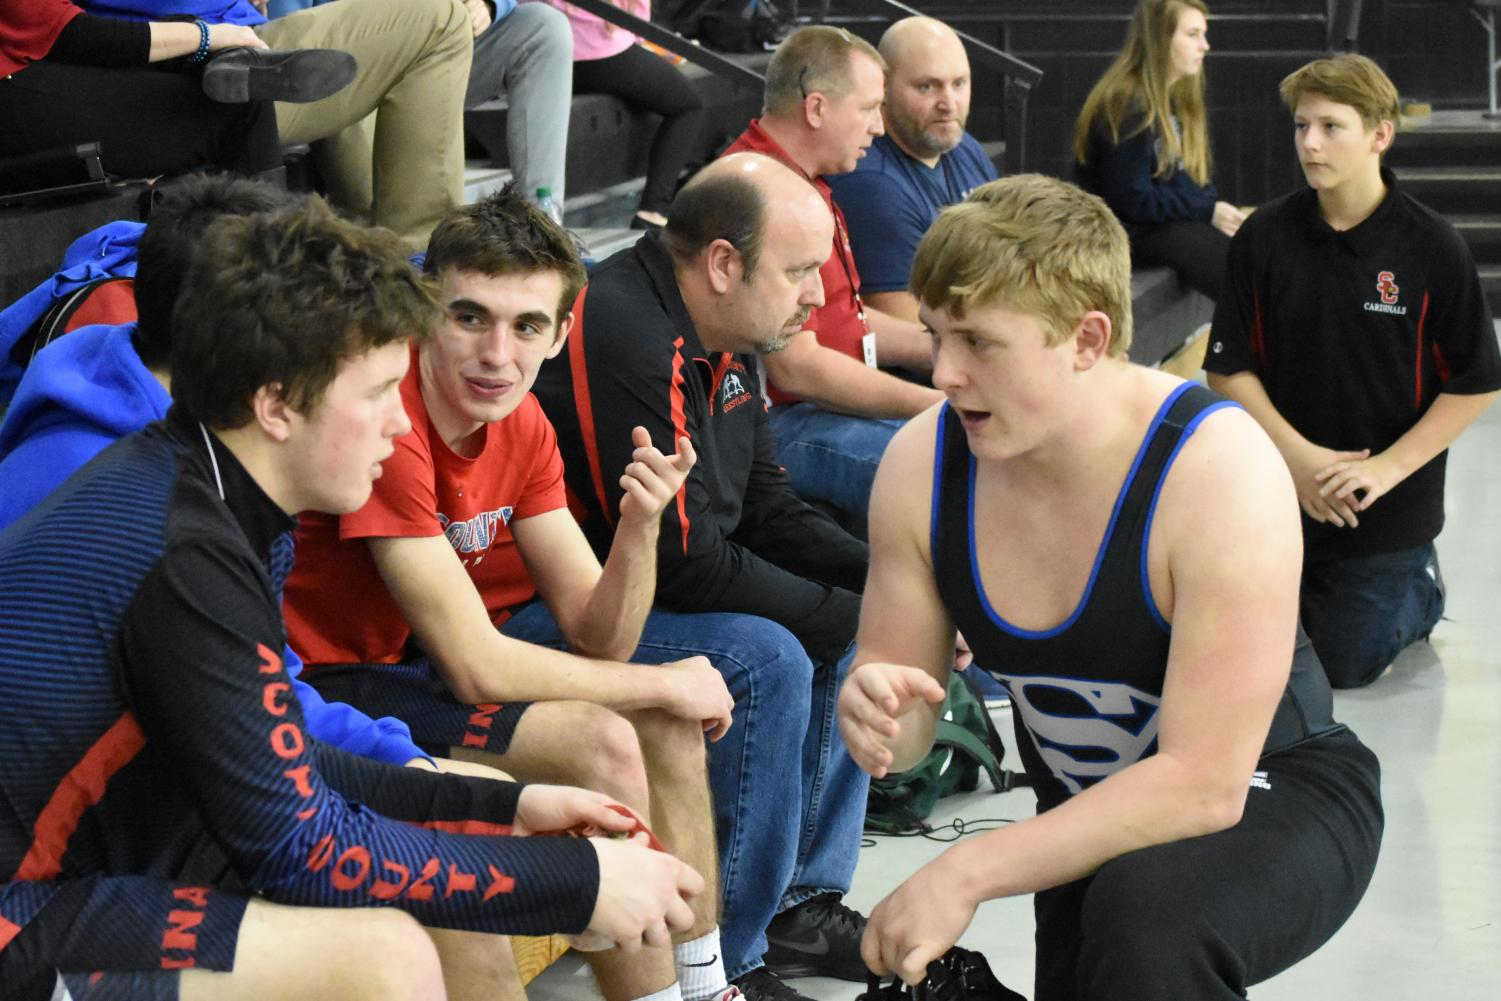 Juniors+John+Hulette+and+Truman+Galusha+talk+with+a+fellow+wrestler+from+South+Oldham+High+School.++The+wrestling+community+is+a+tight+knit+community+that+emphasizes+respect+and+good+sportsmanship.+